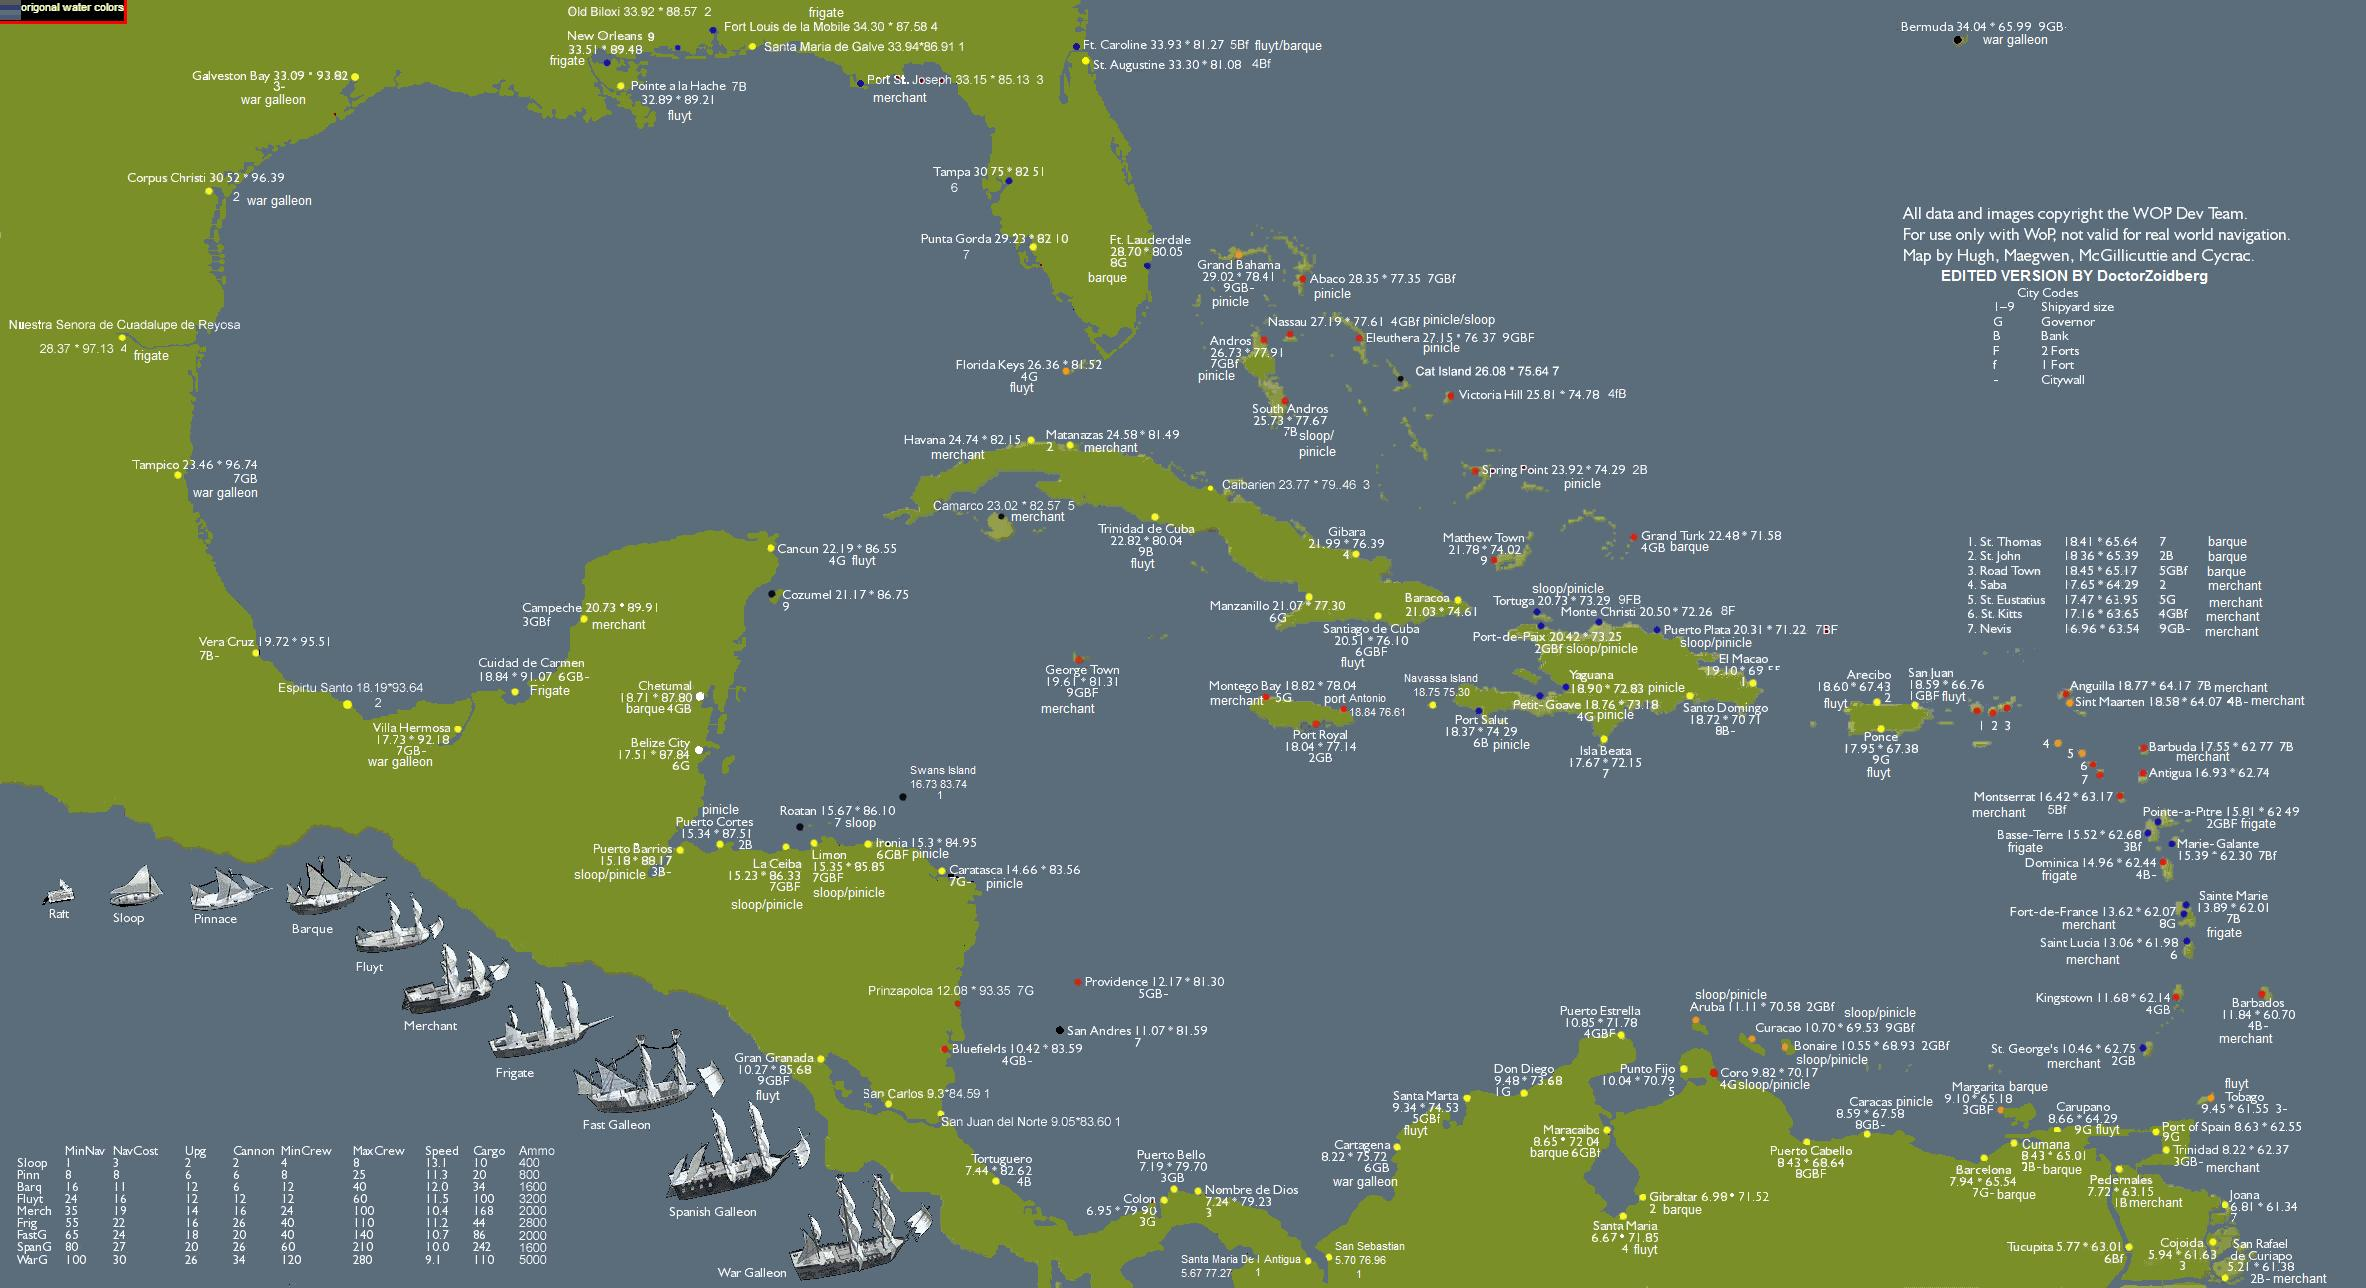 Pirate World Map.World Of Pirates Maps Strategywiki The Video Game Walkthrough And